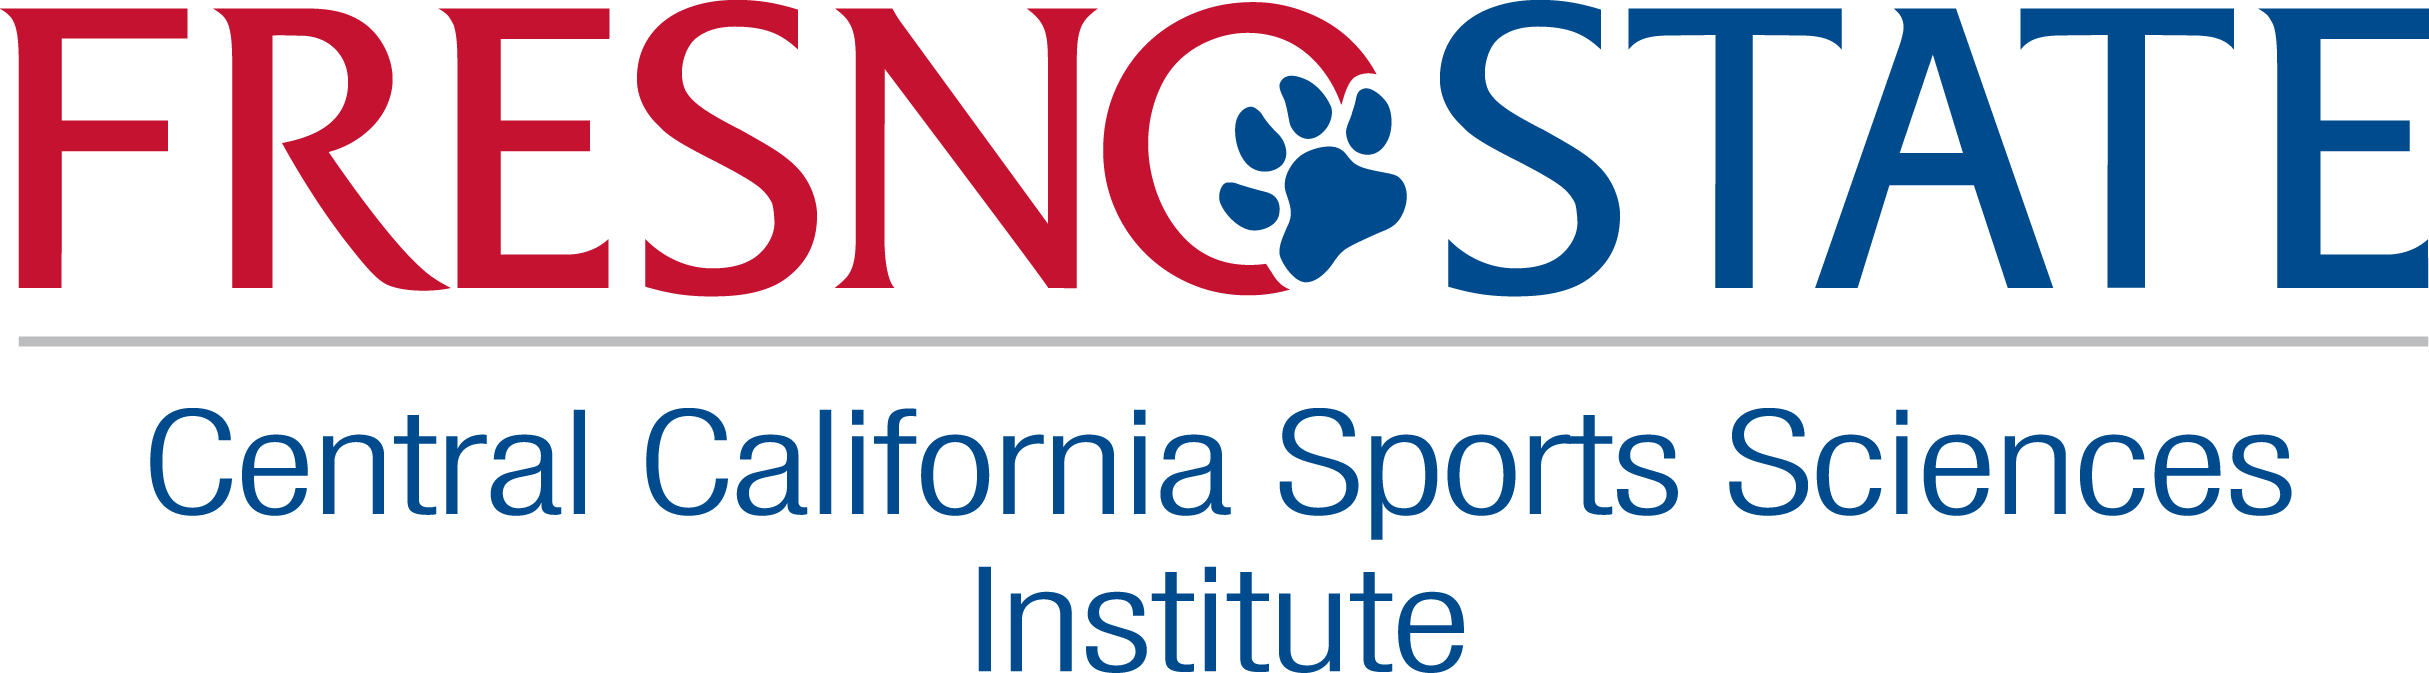 Logo for Central California Sports Sciences Institute